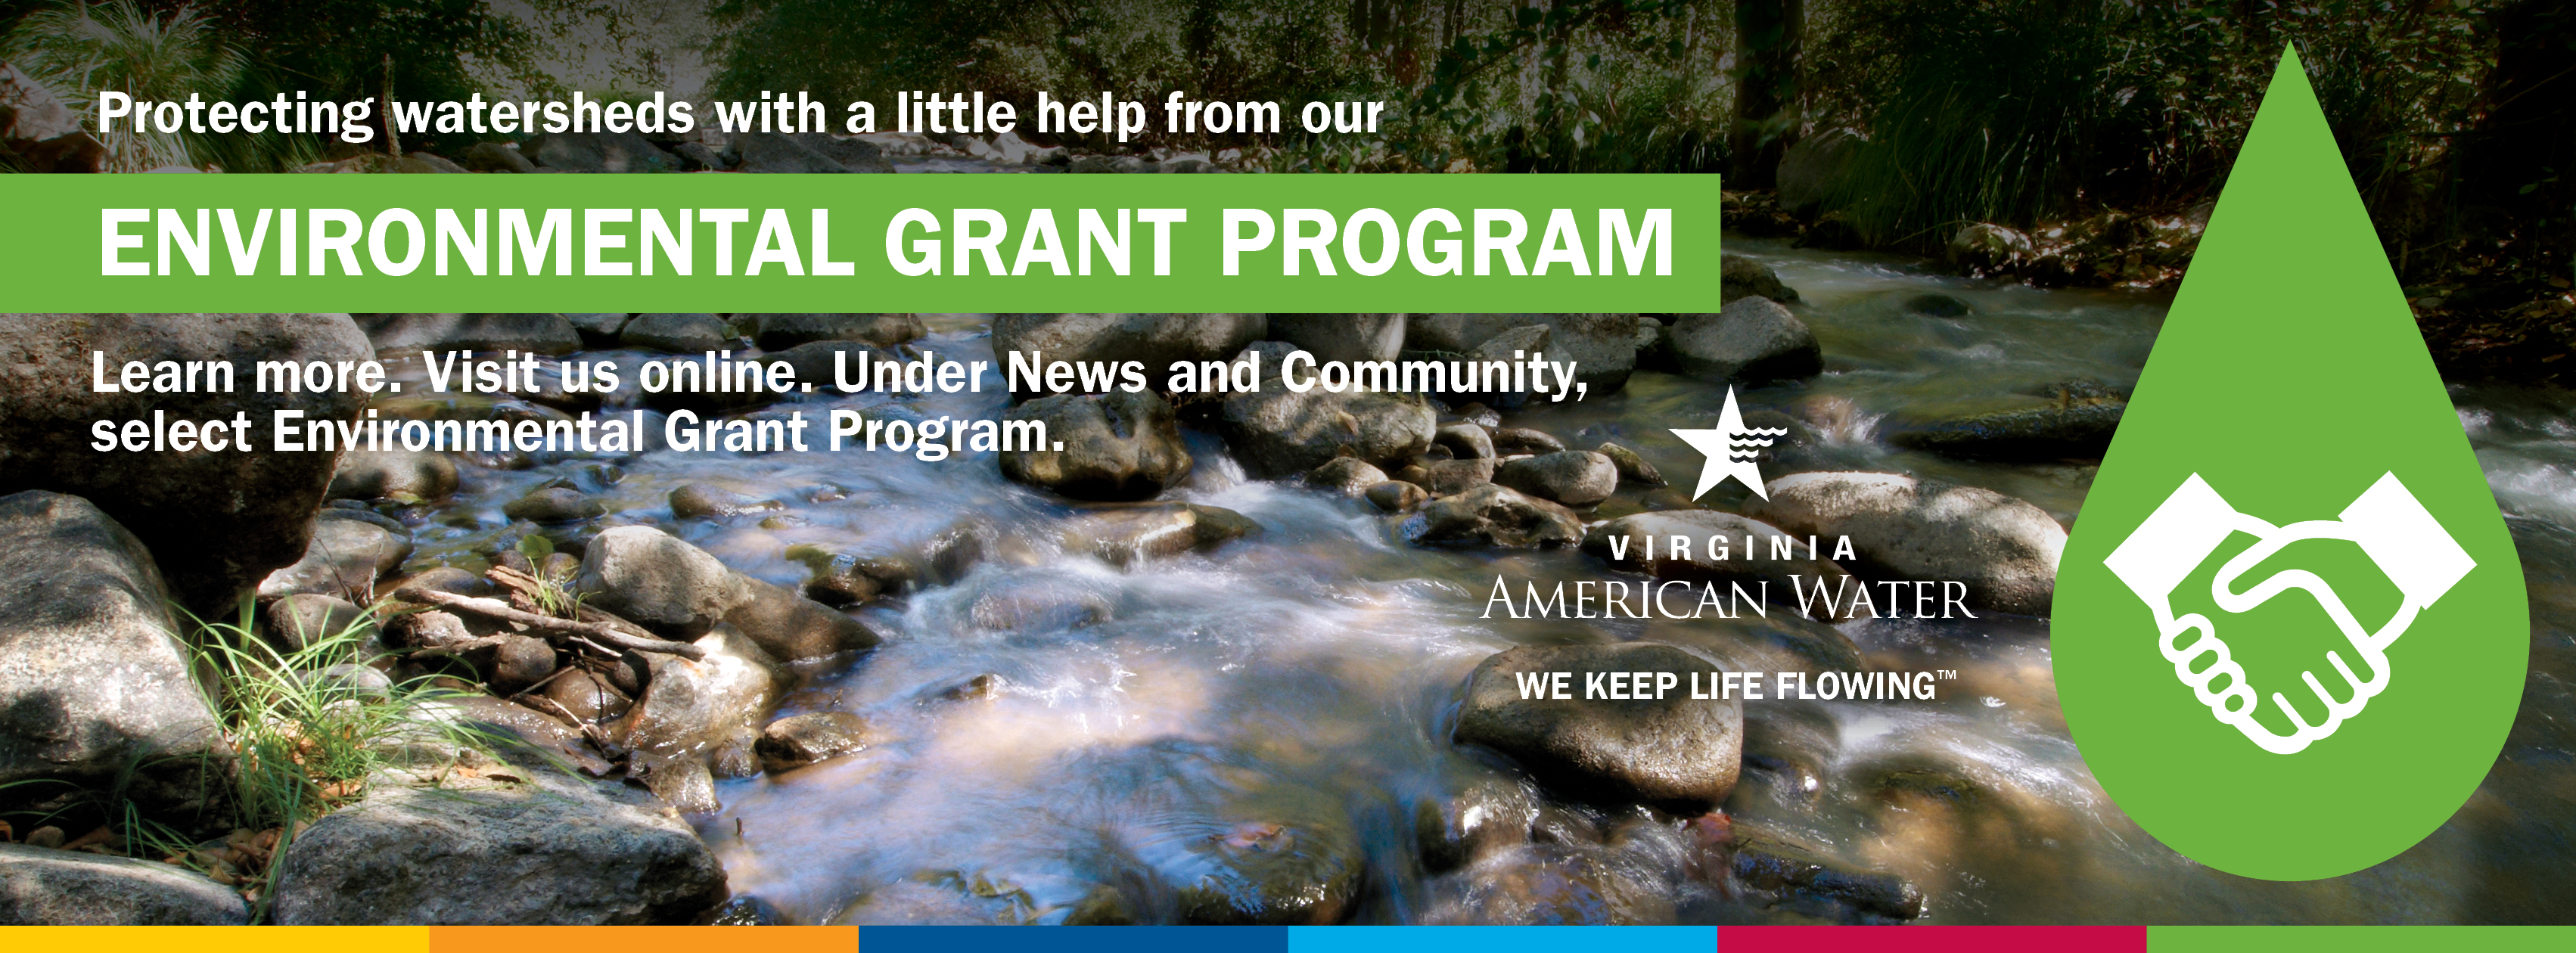 Environmental Grant - FB Timeline Image - VA